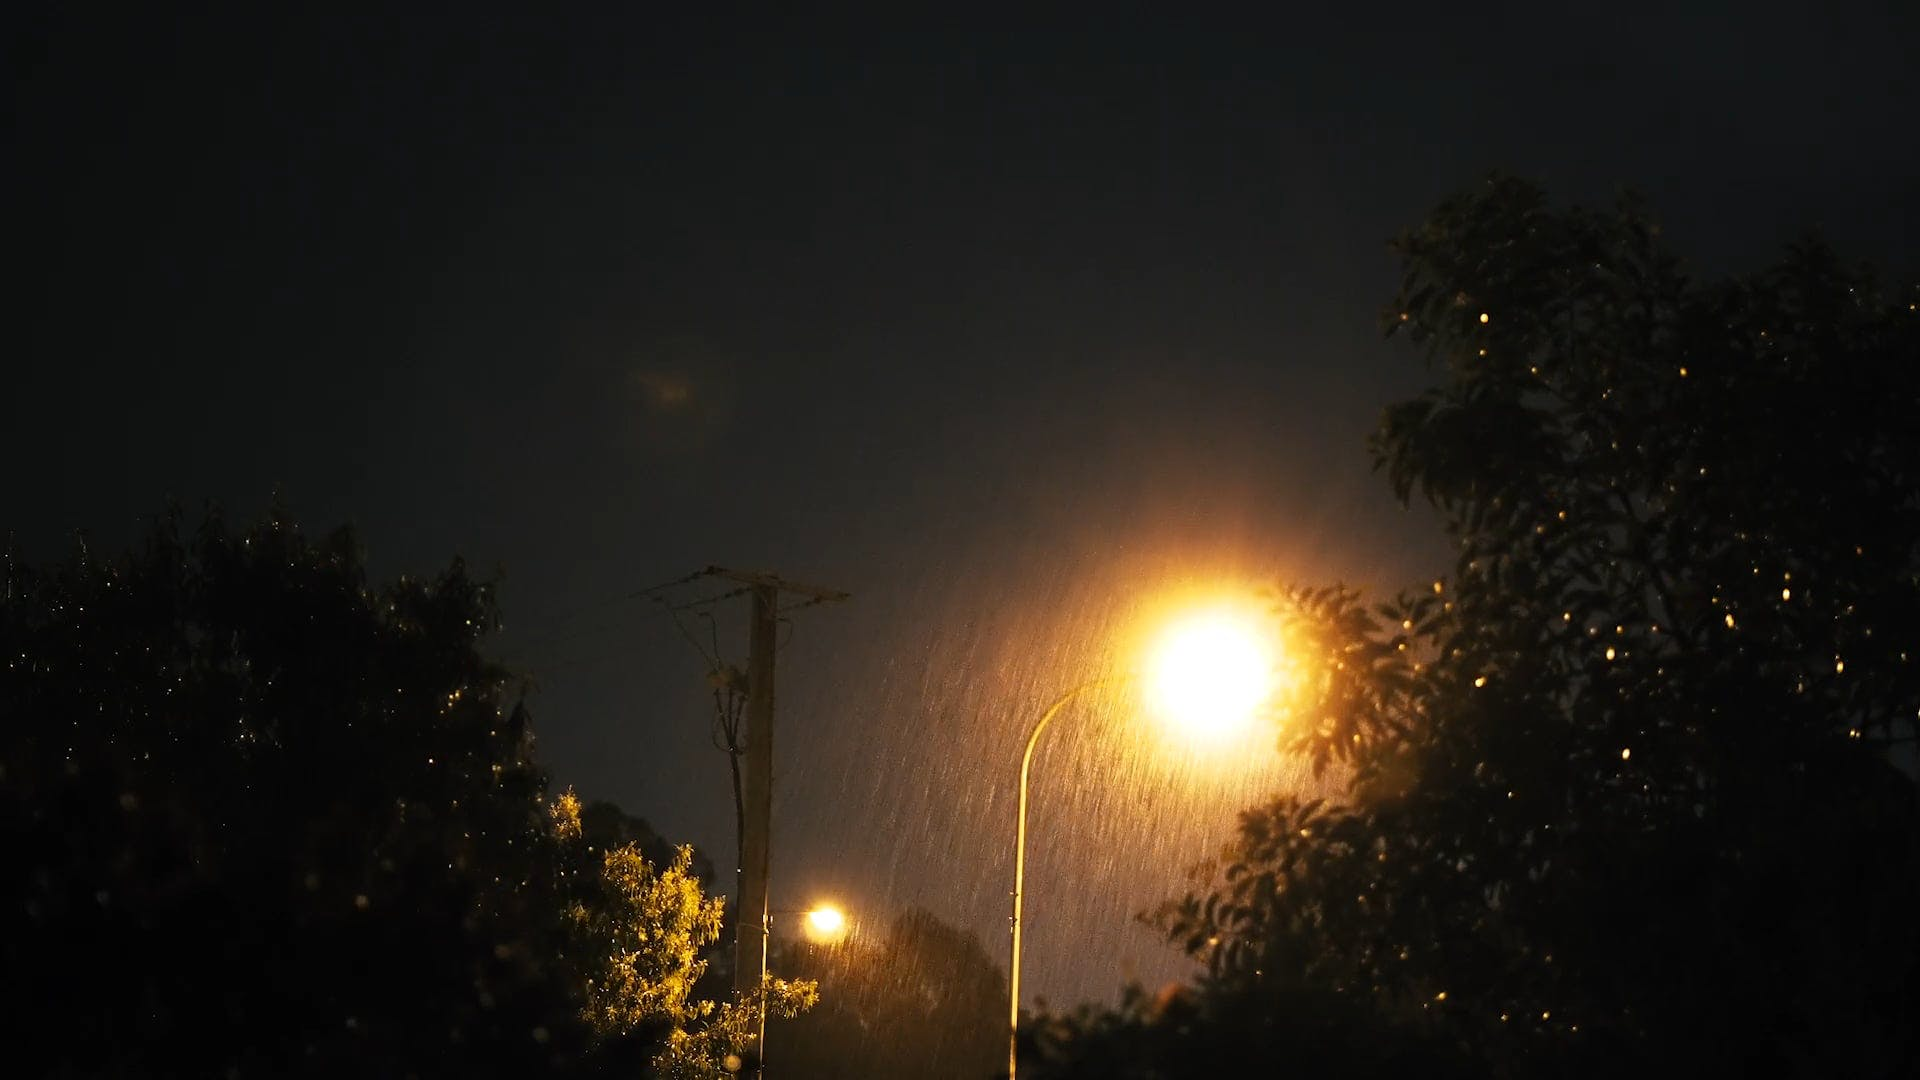 A Rainy Night